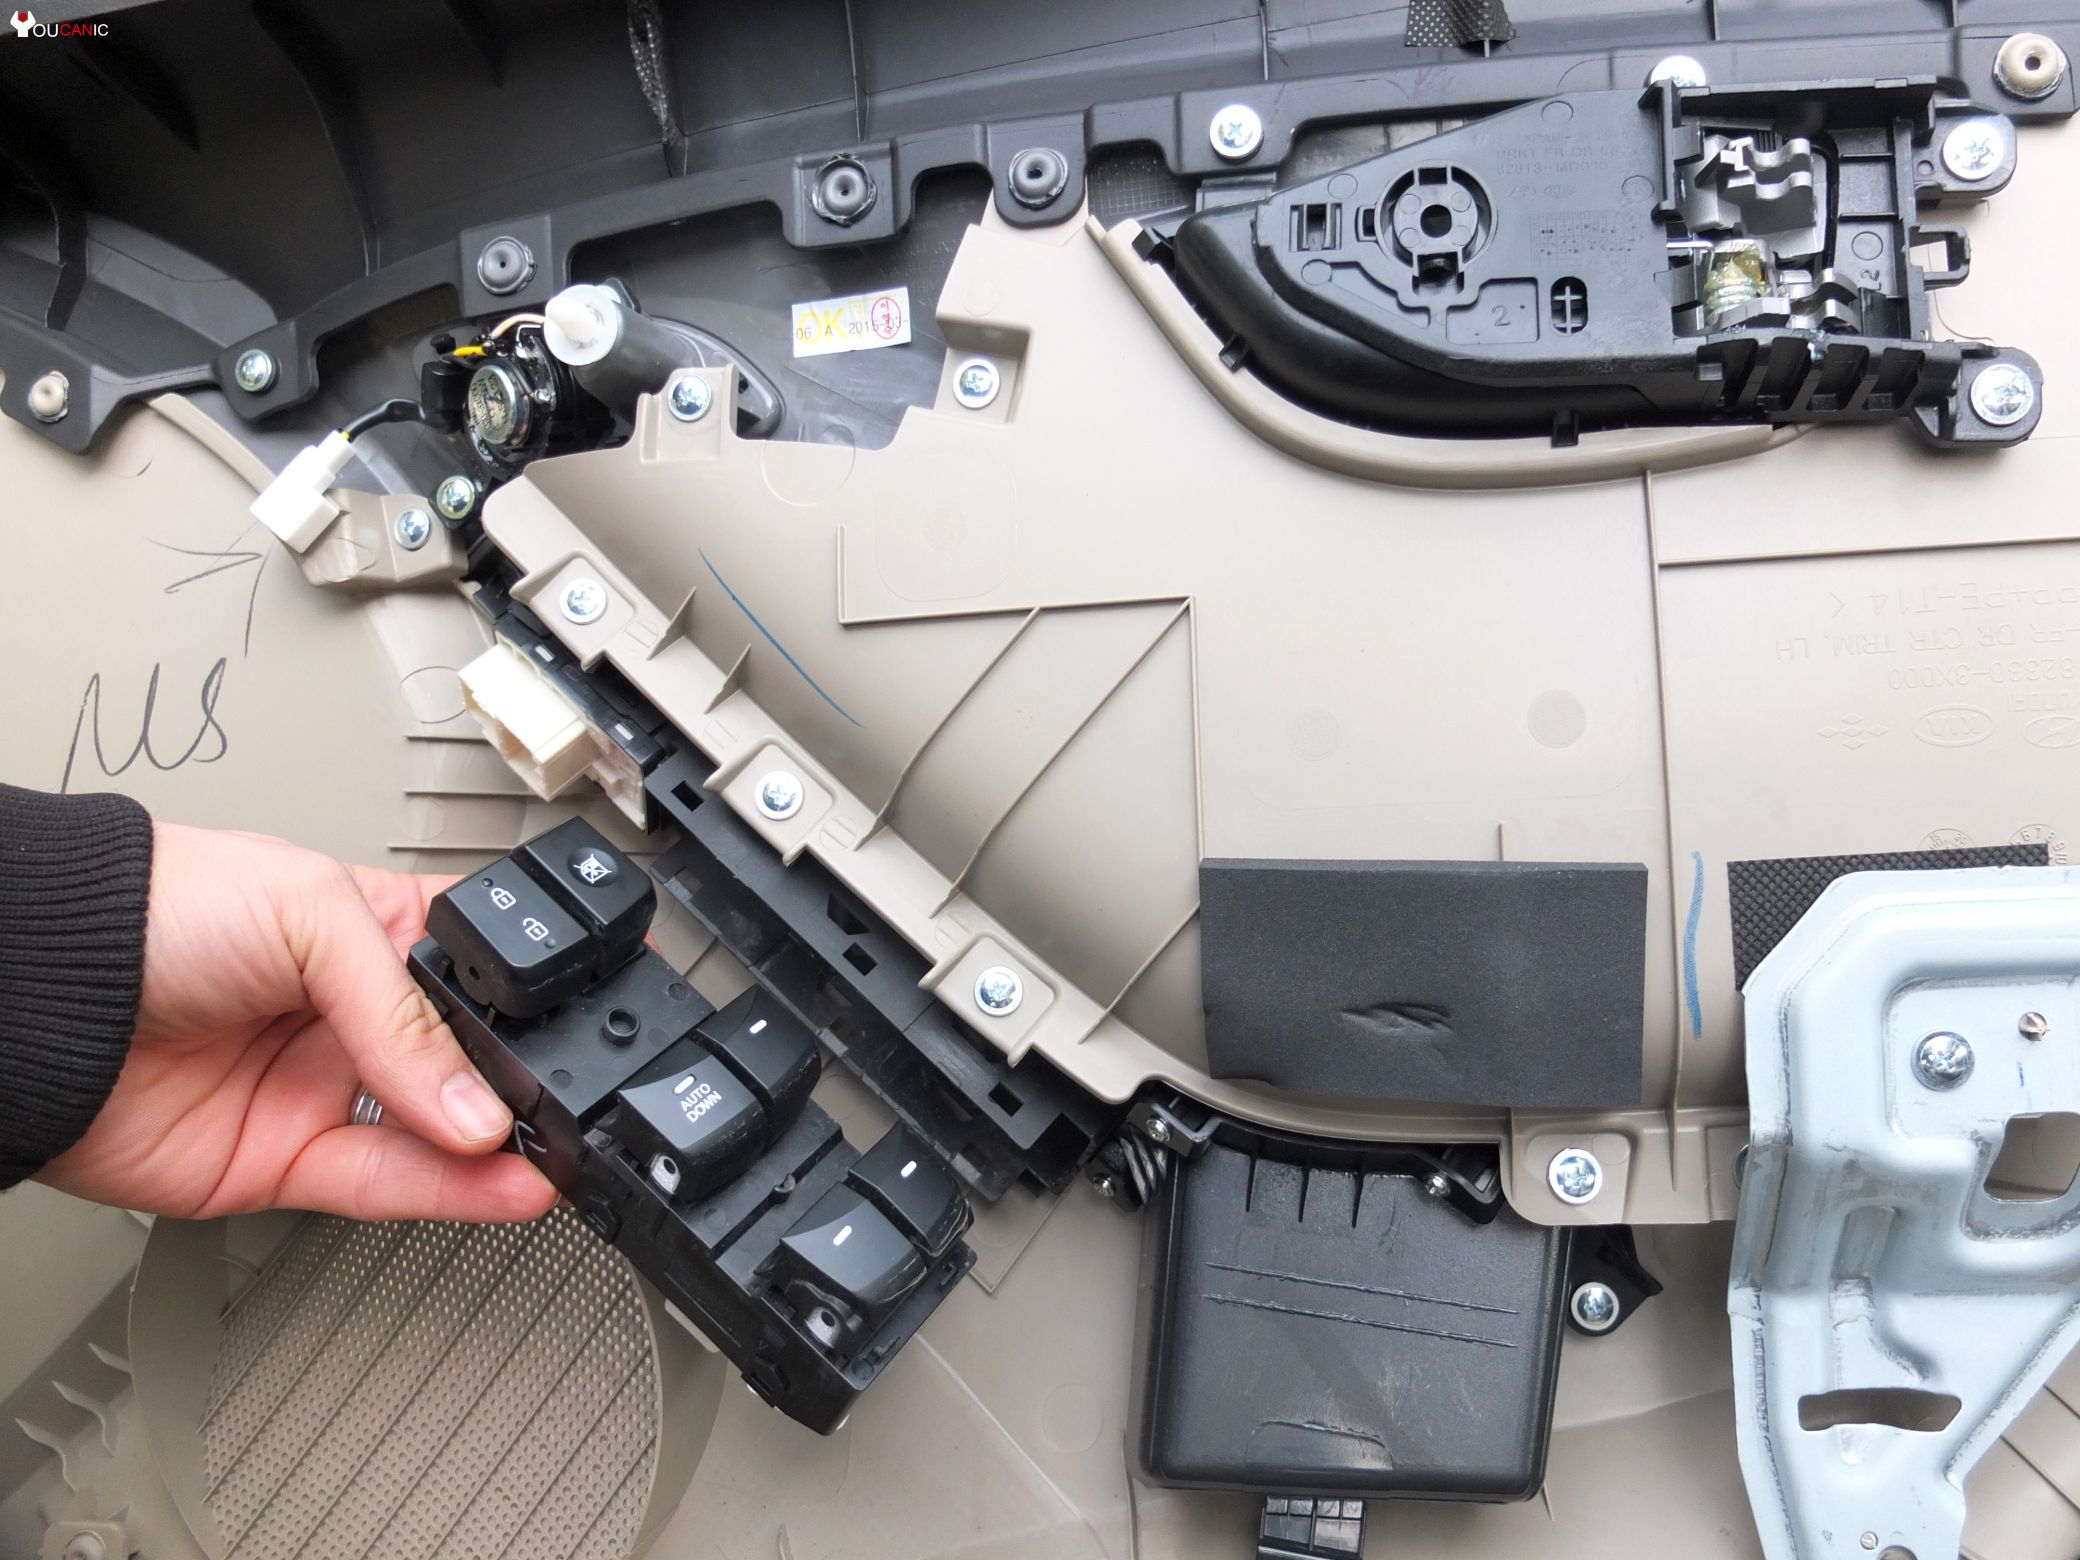 hyundai elatra door switch replacement diy guide